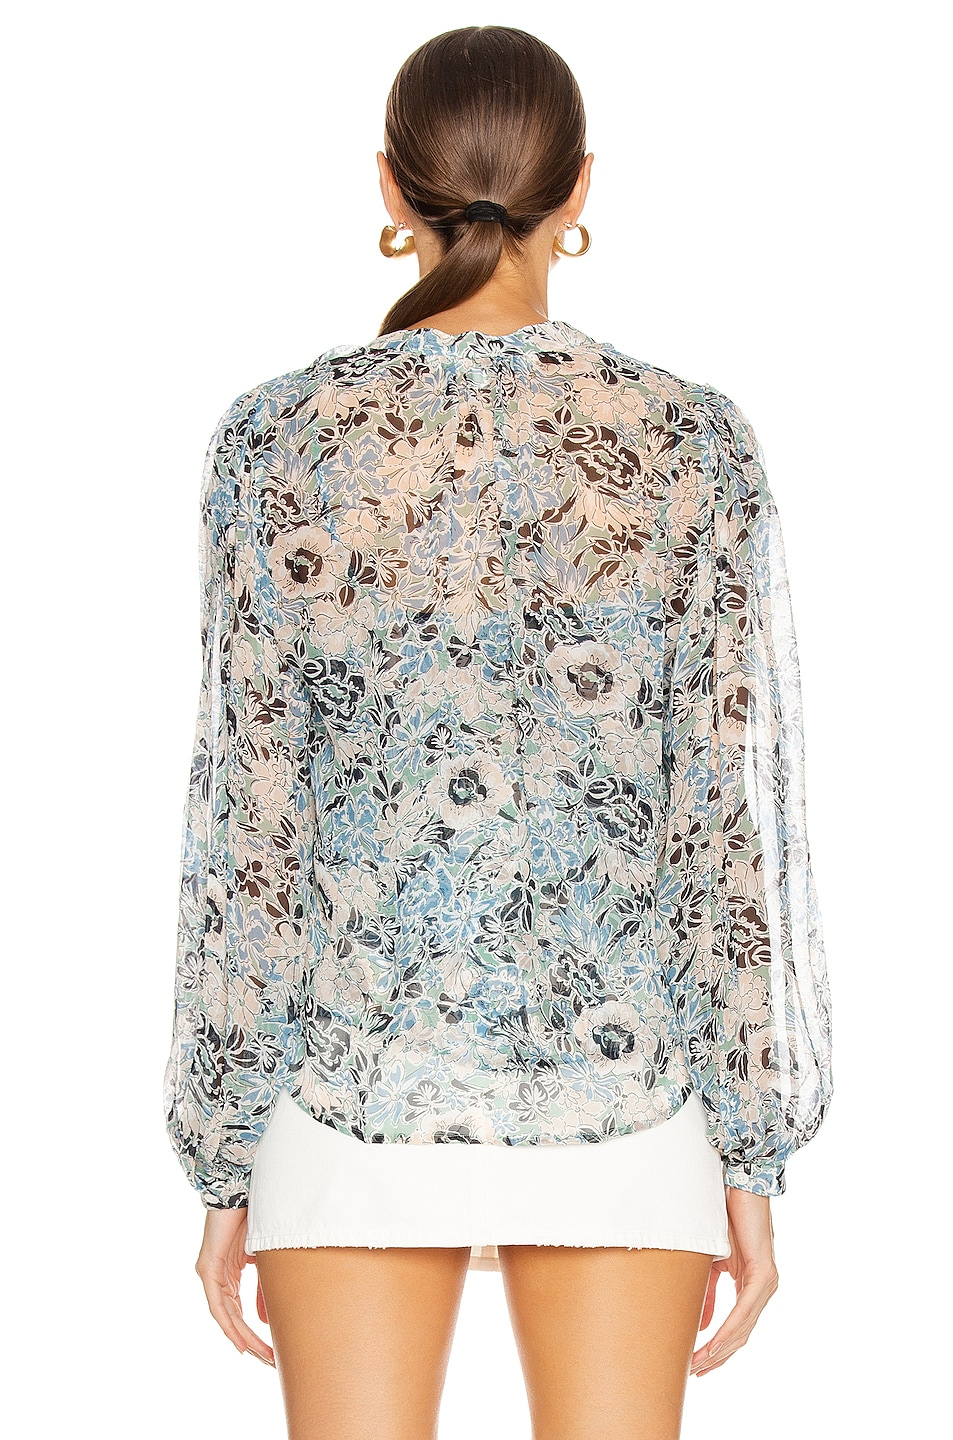 Image 3 of Veronica Beard Ashlynn Blouse in Blue Multi